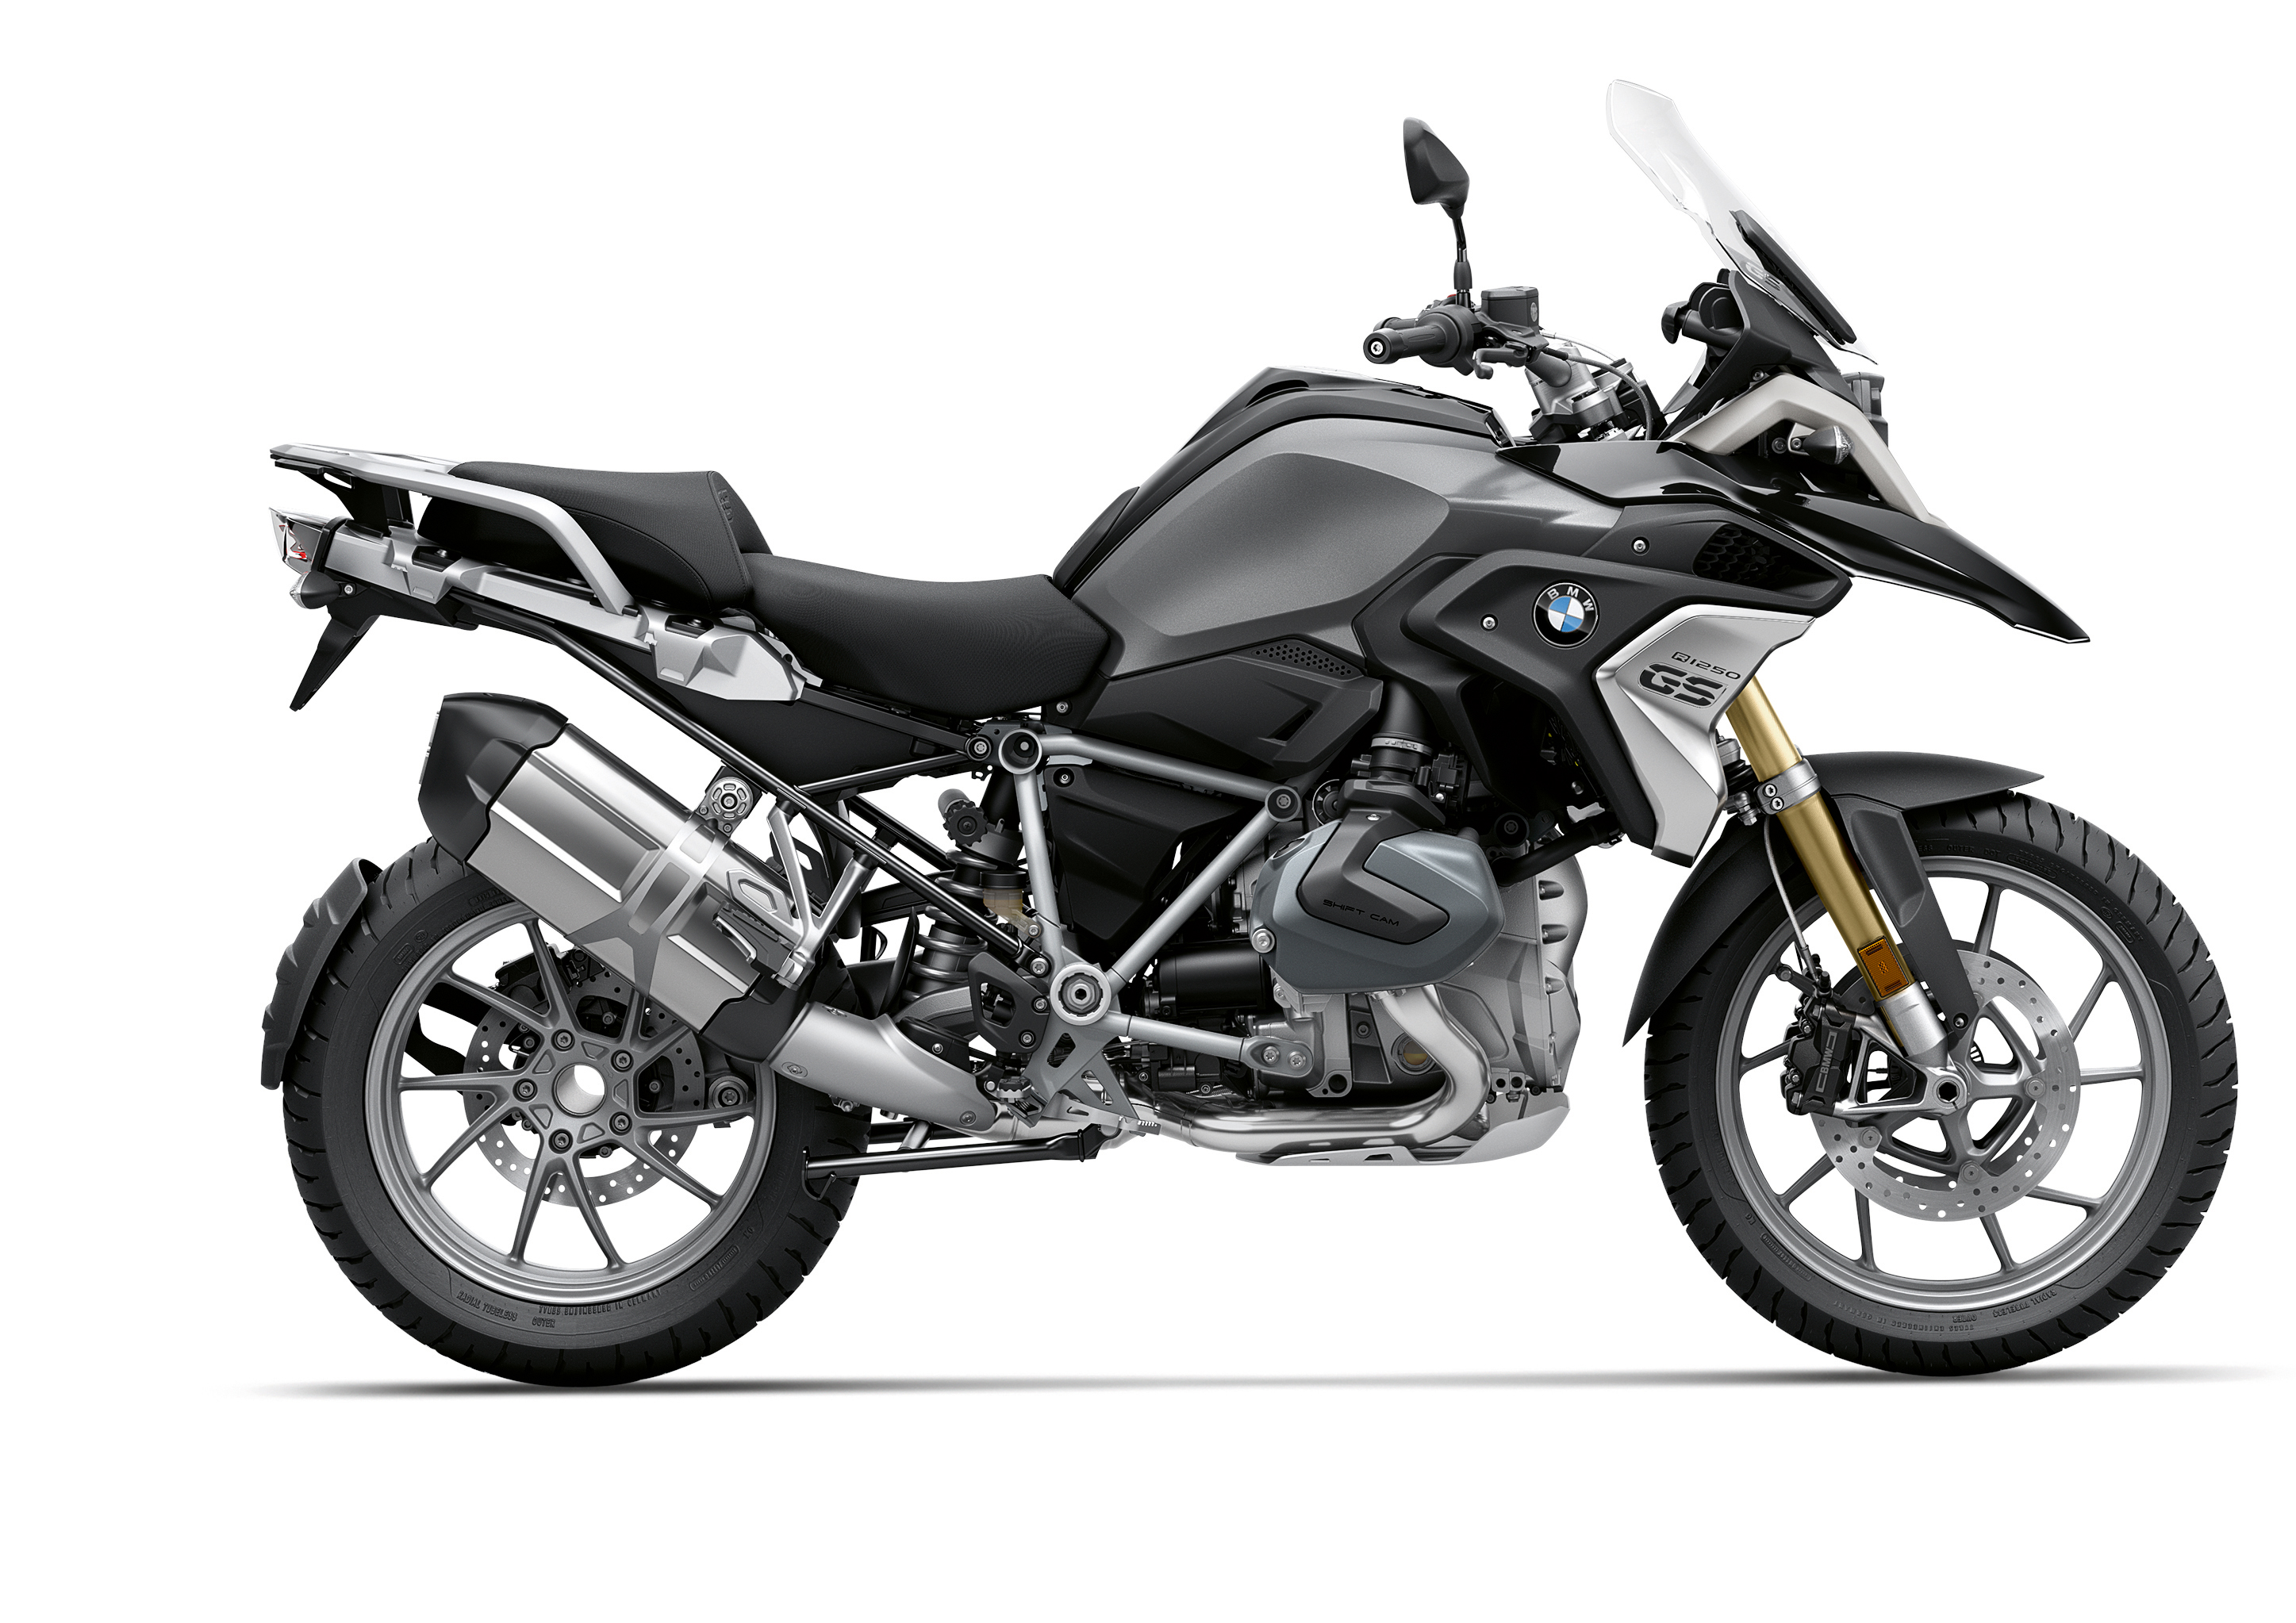 R 1250 GS Blackstorm metallic